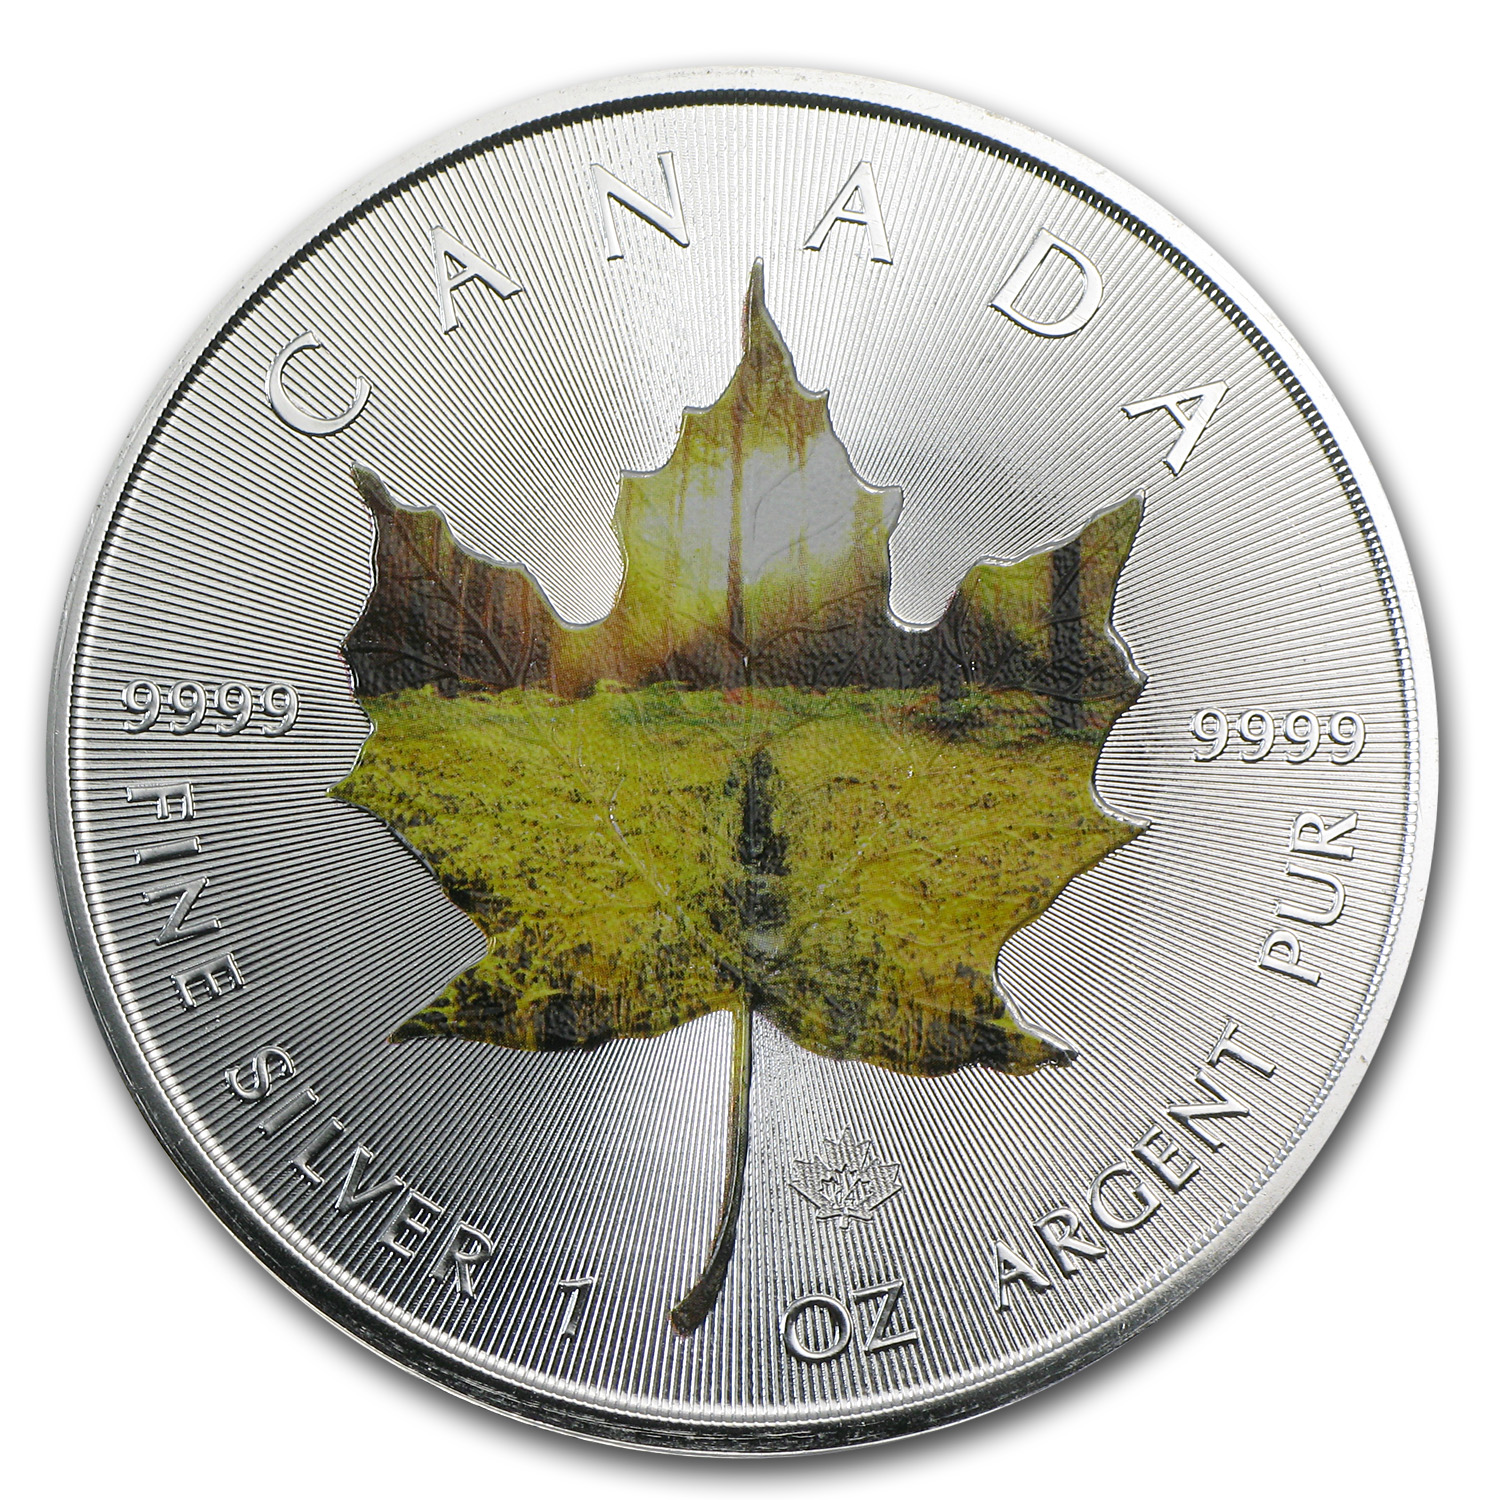 2014 1 oz Silver Canadian Maple Leaf - Summer Landscape